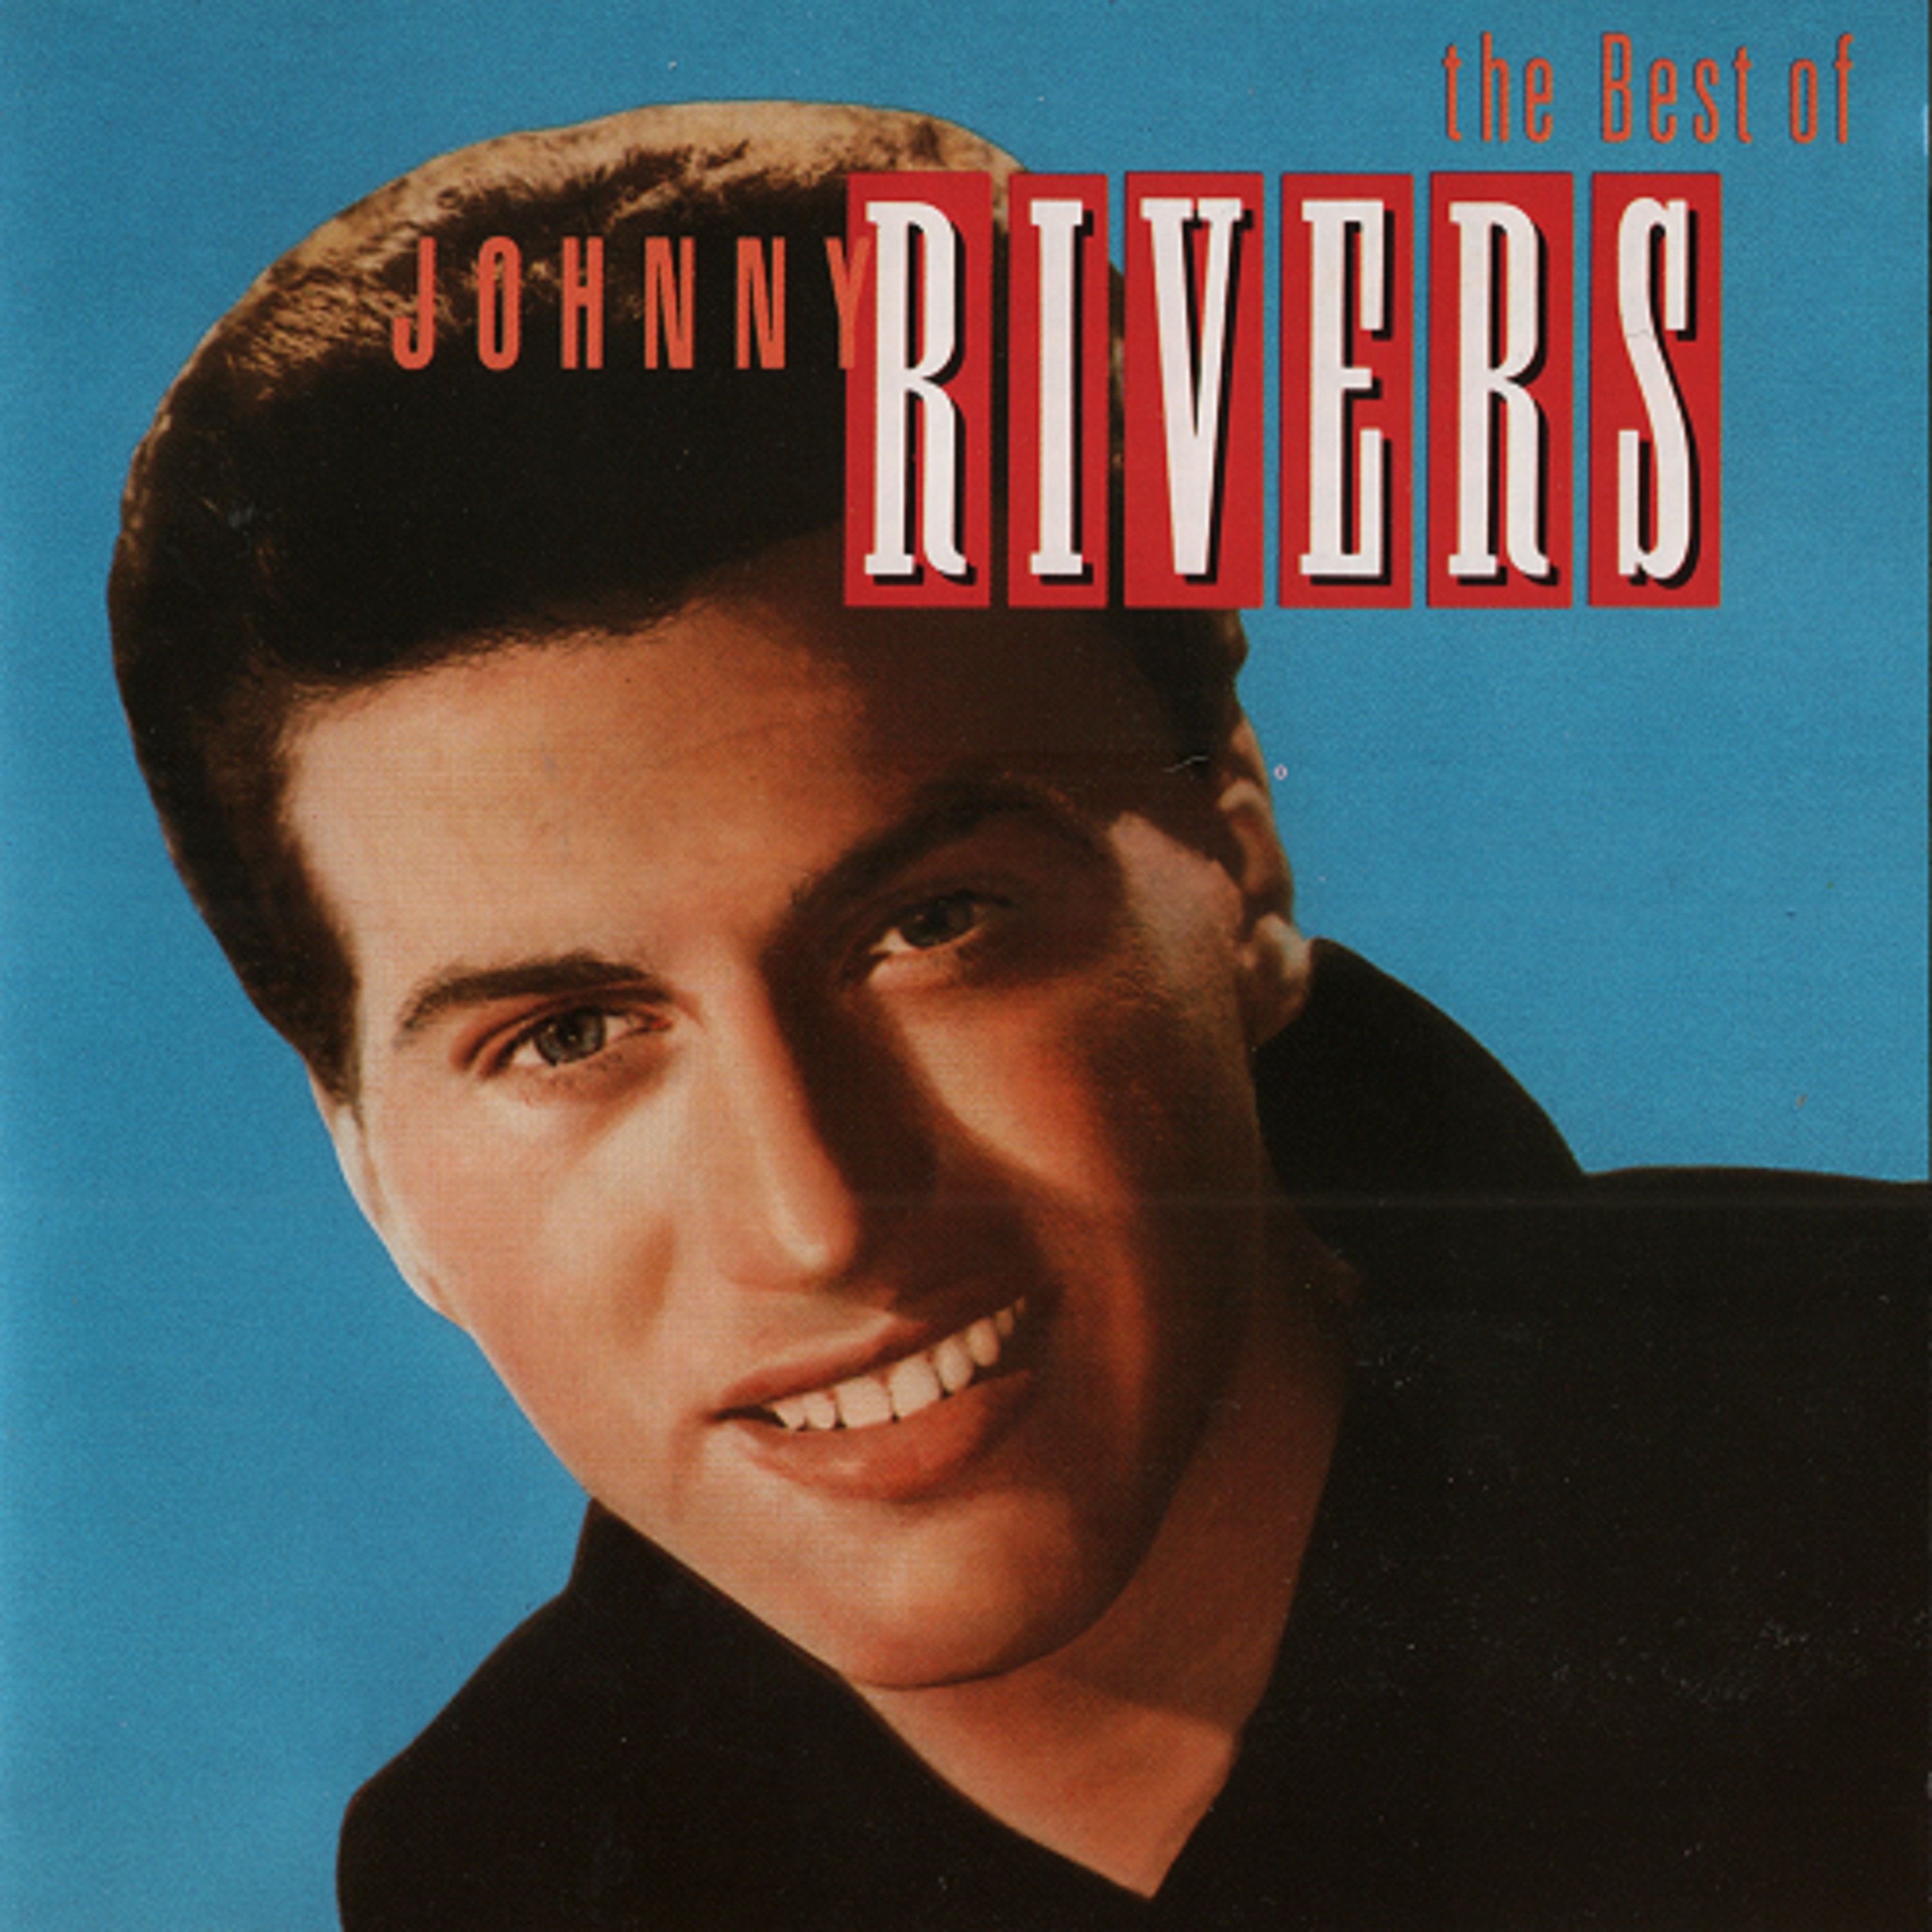 Johnny Rivers - The Best Of Johnny Rivers (180 Gram Audiophile Vinyl/Limited Anniversary Edition/Gatefold Cover)